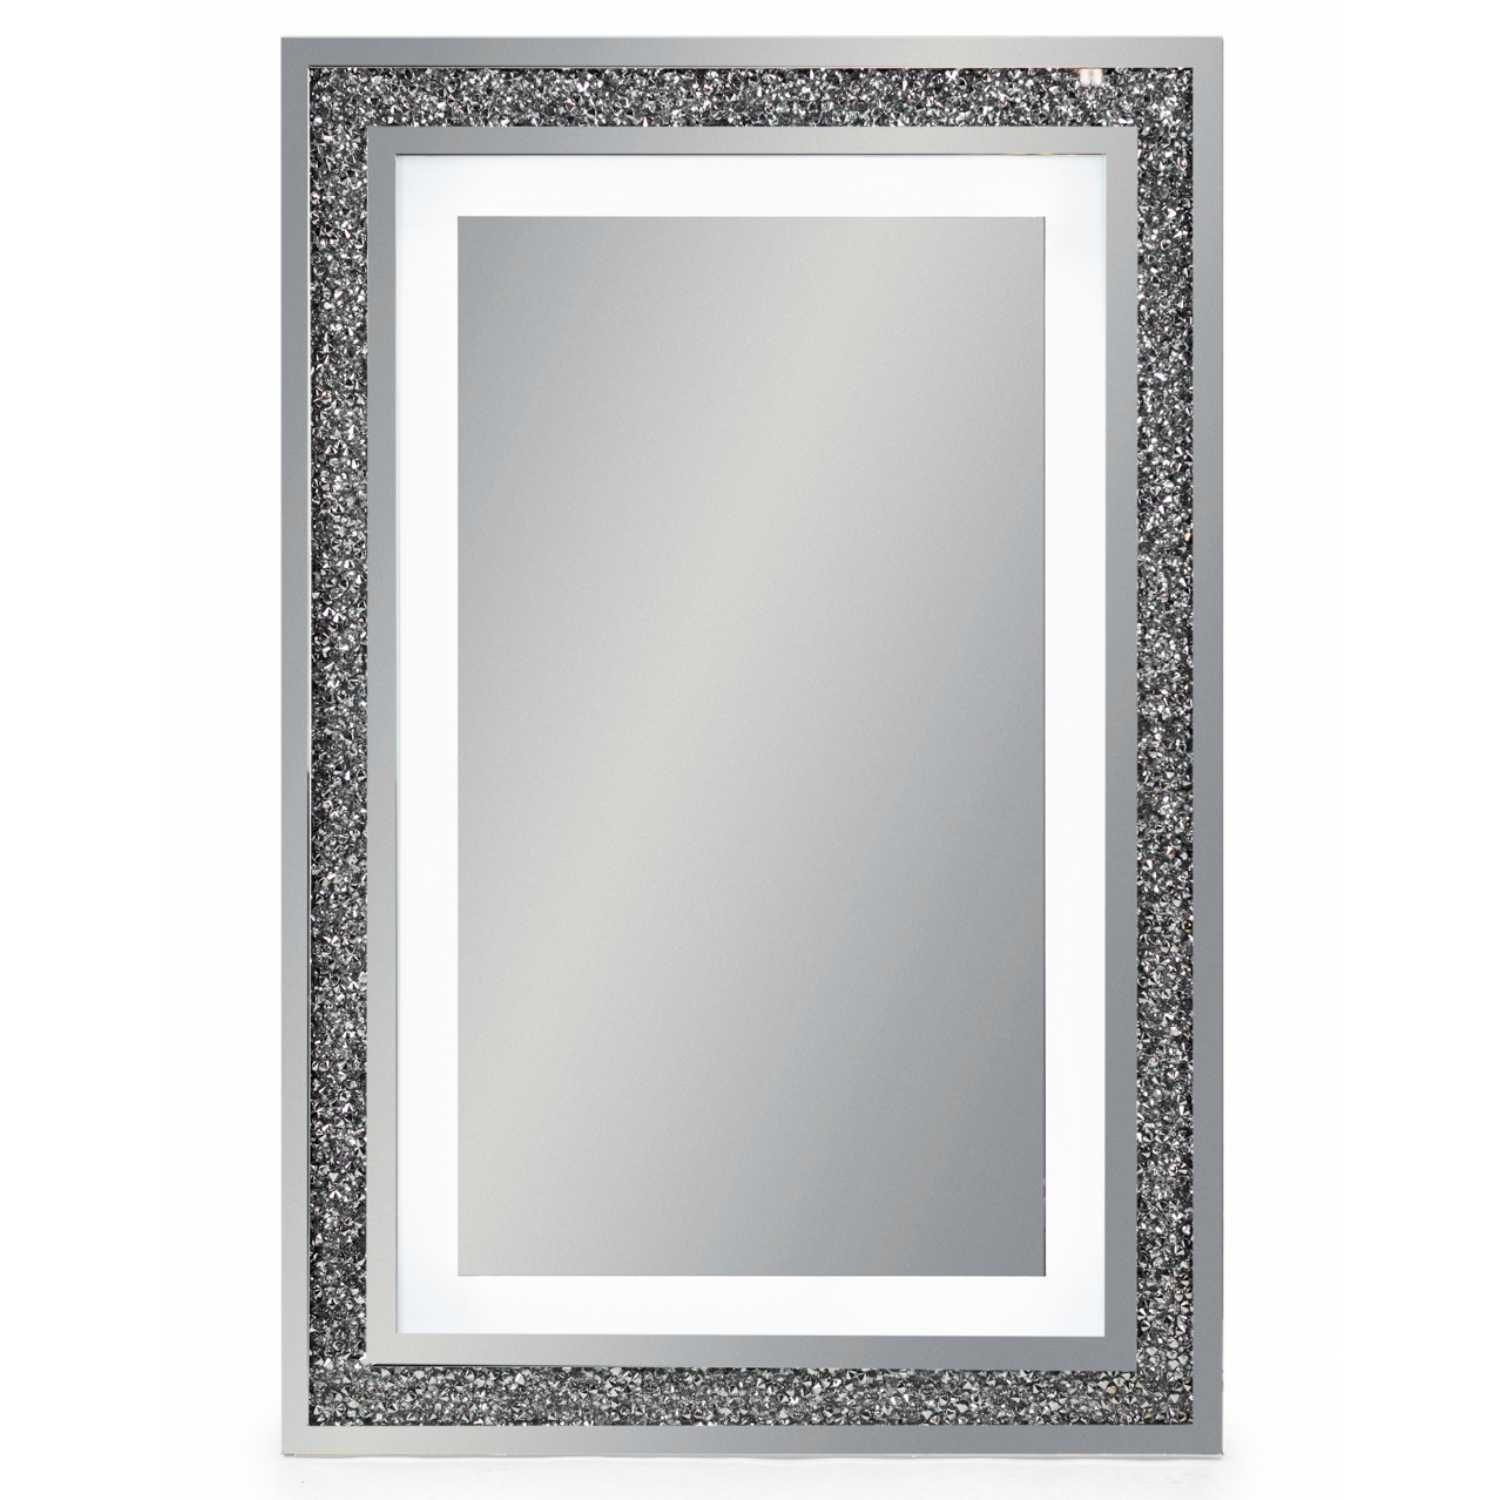 Decorative Venetian Glass Framed Led Light Wall Mirror With Crystals Regarding Mirror With Crystals (Image 9 of 20)